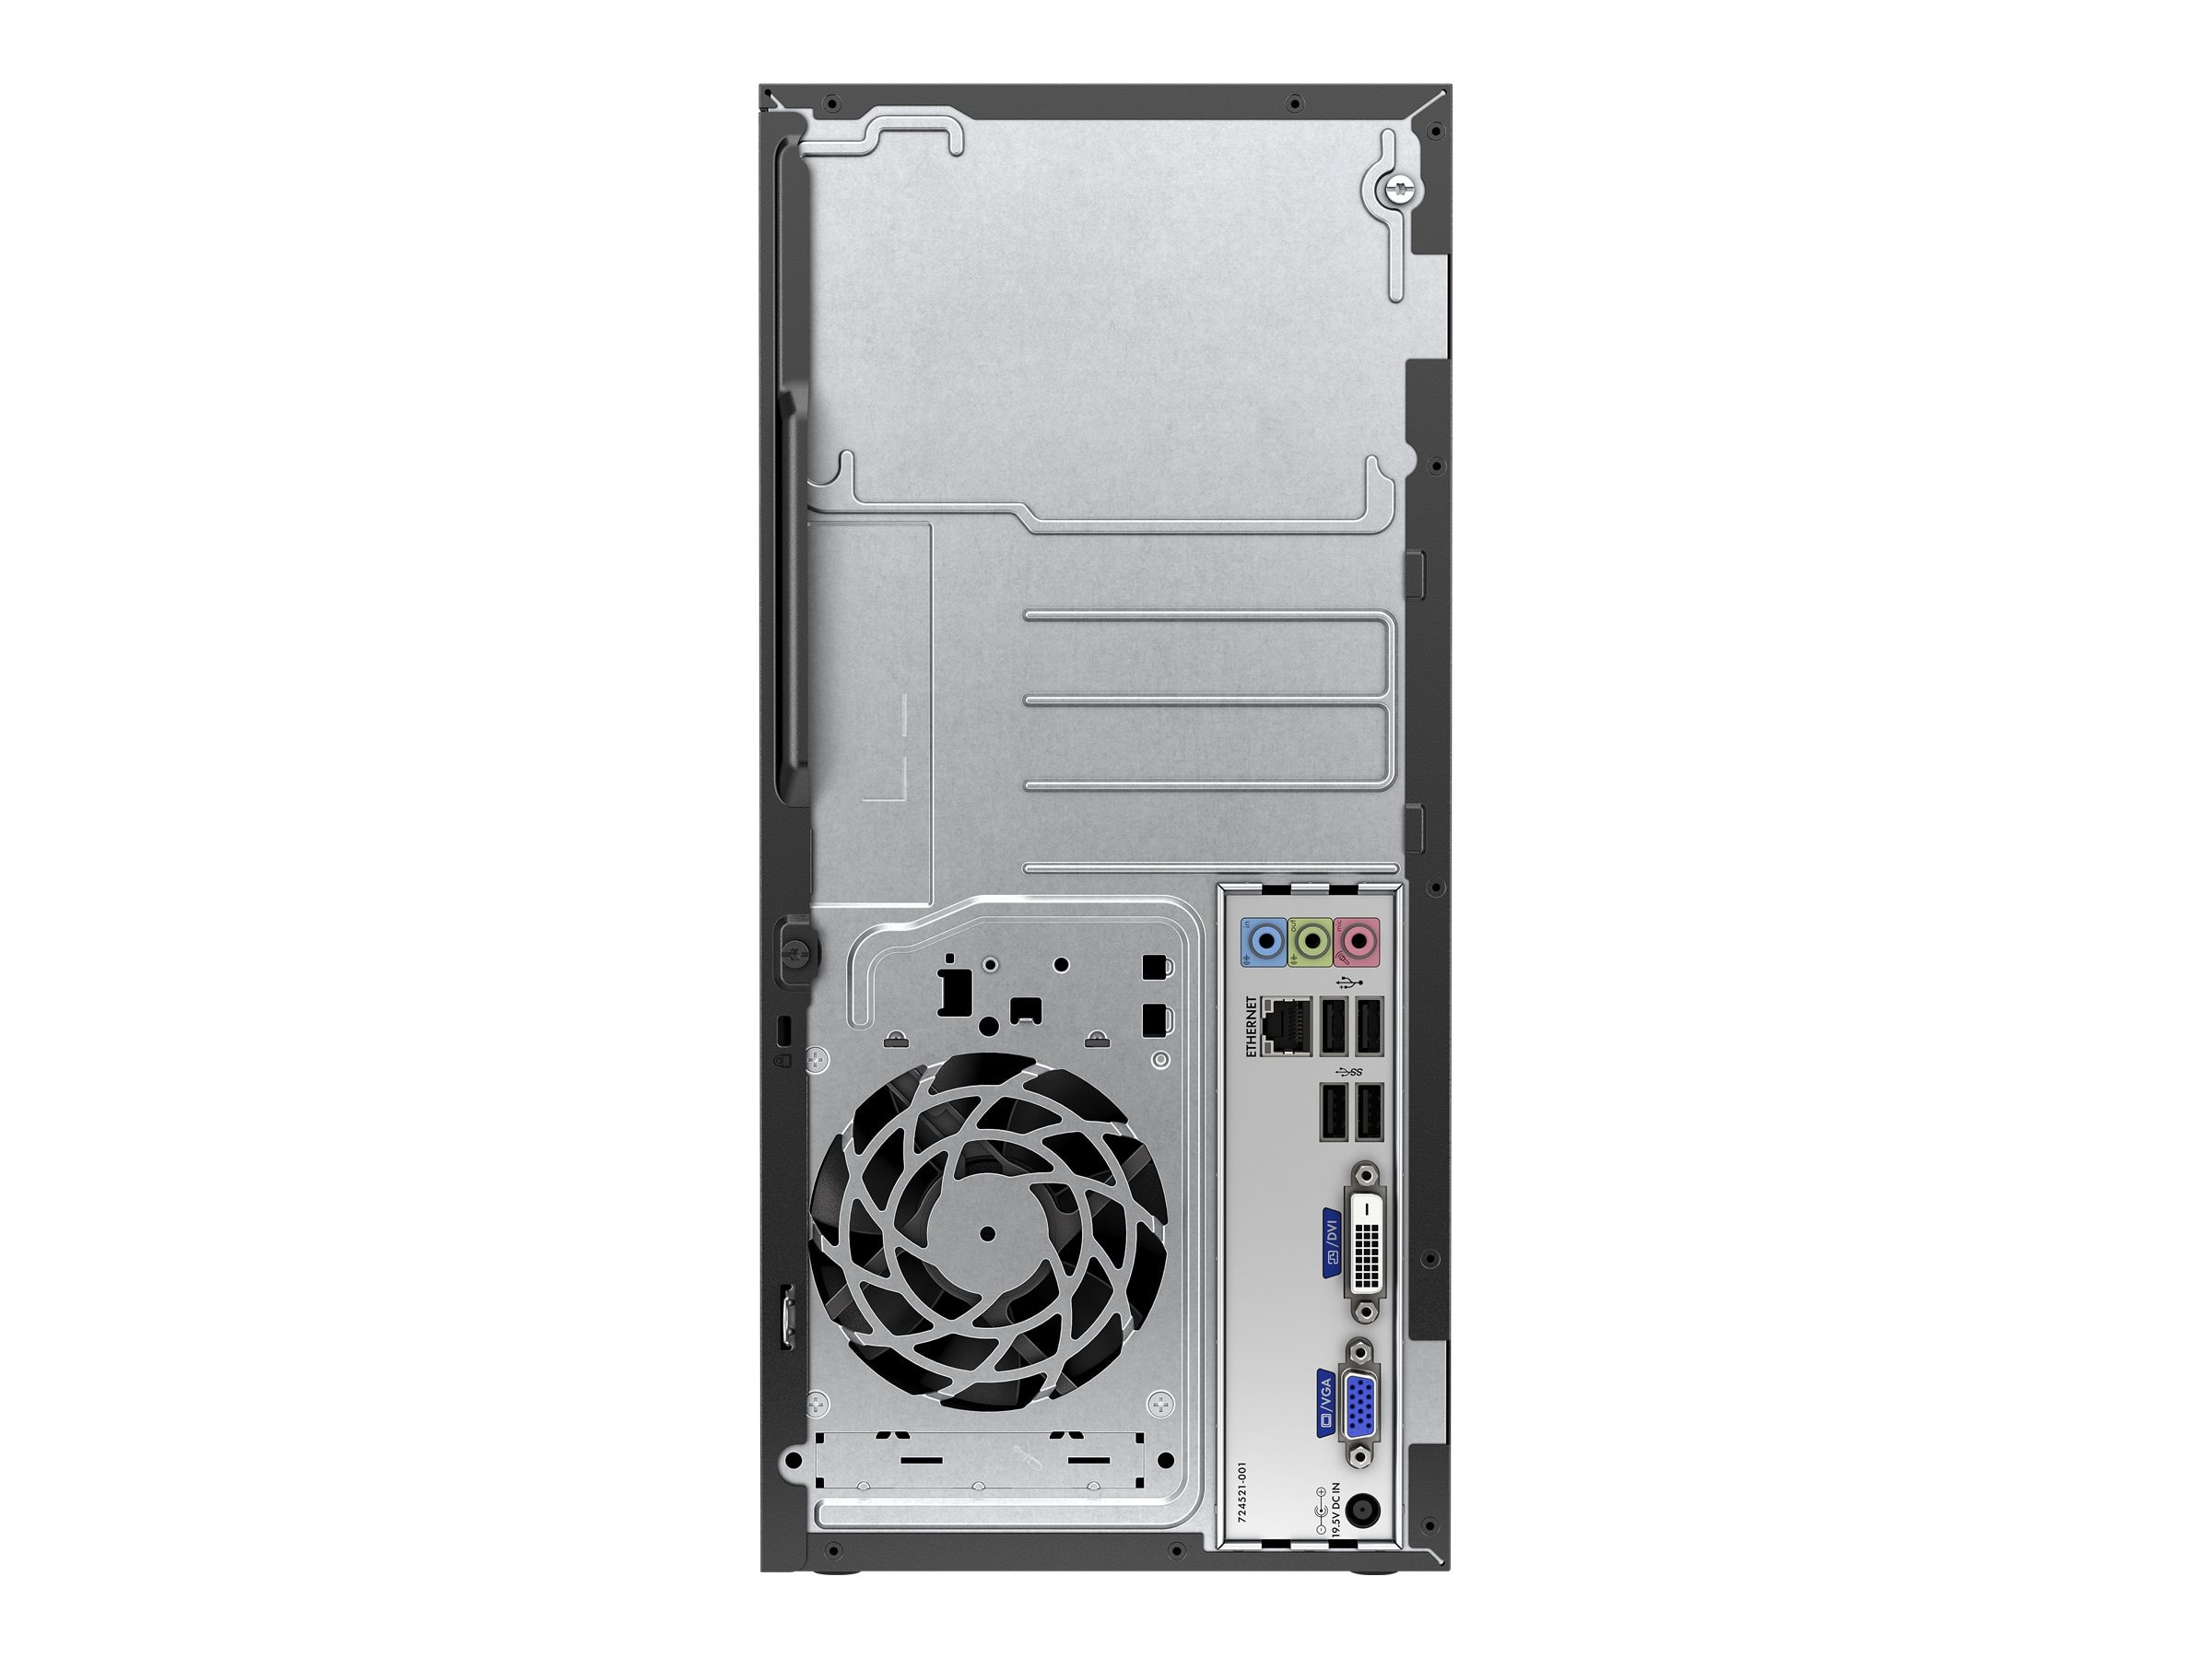 HP 251-A111 Desktop PC, N0A29AA#ABA